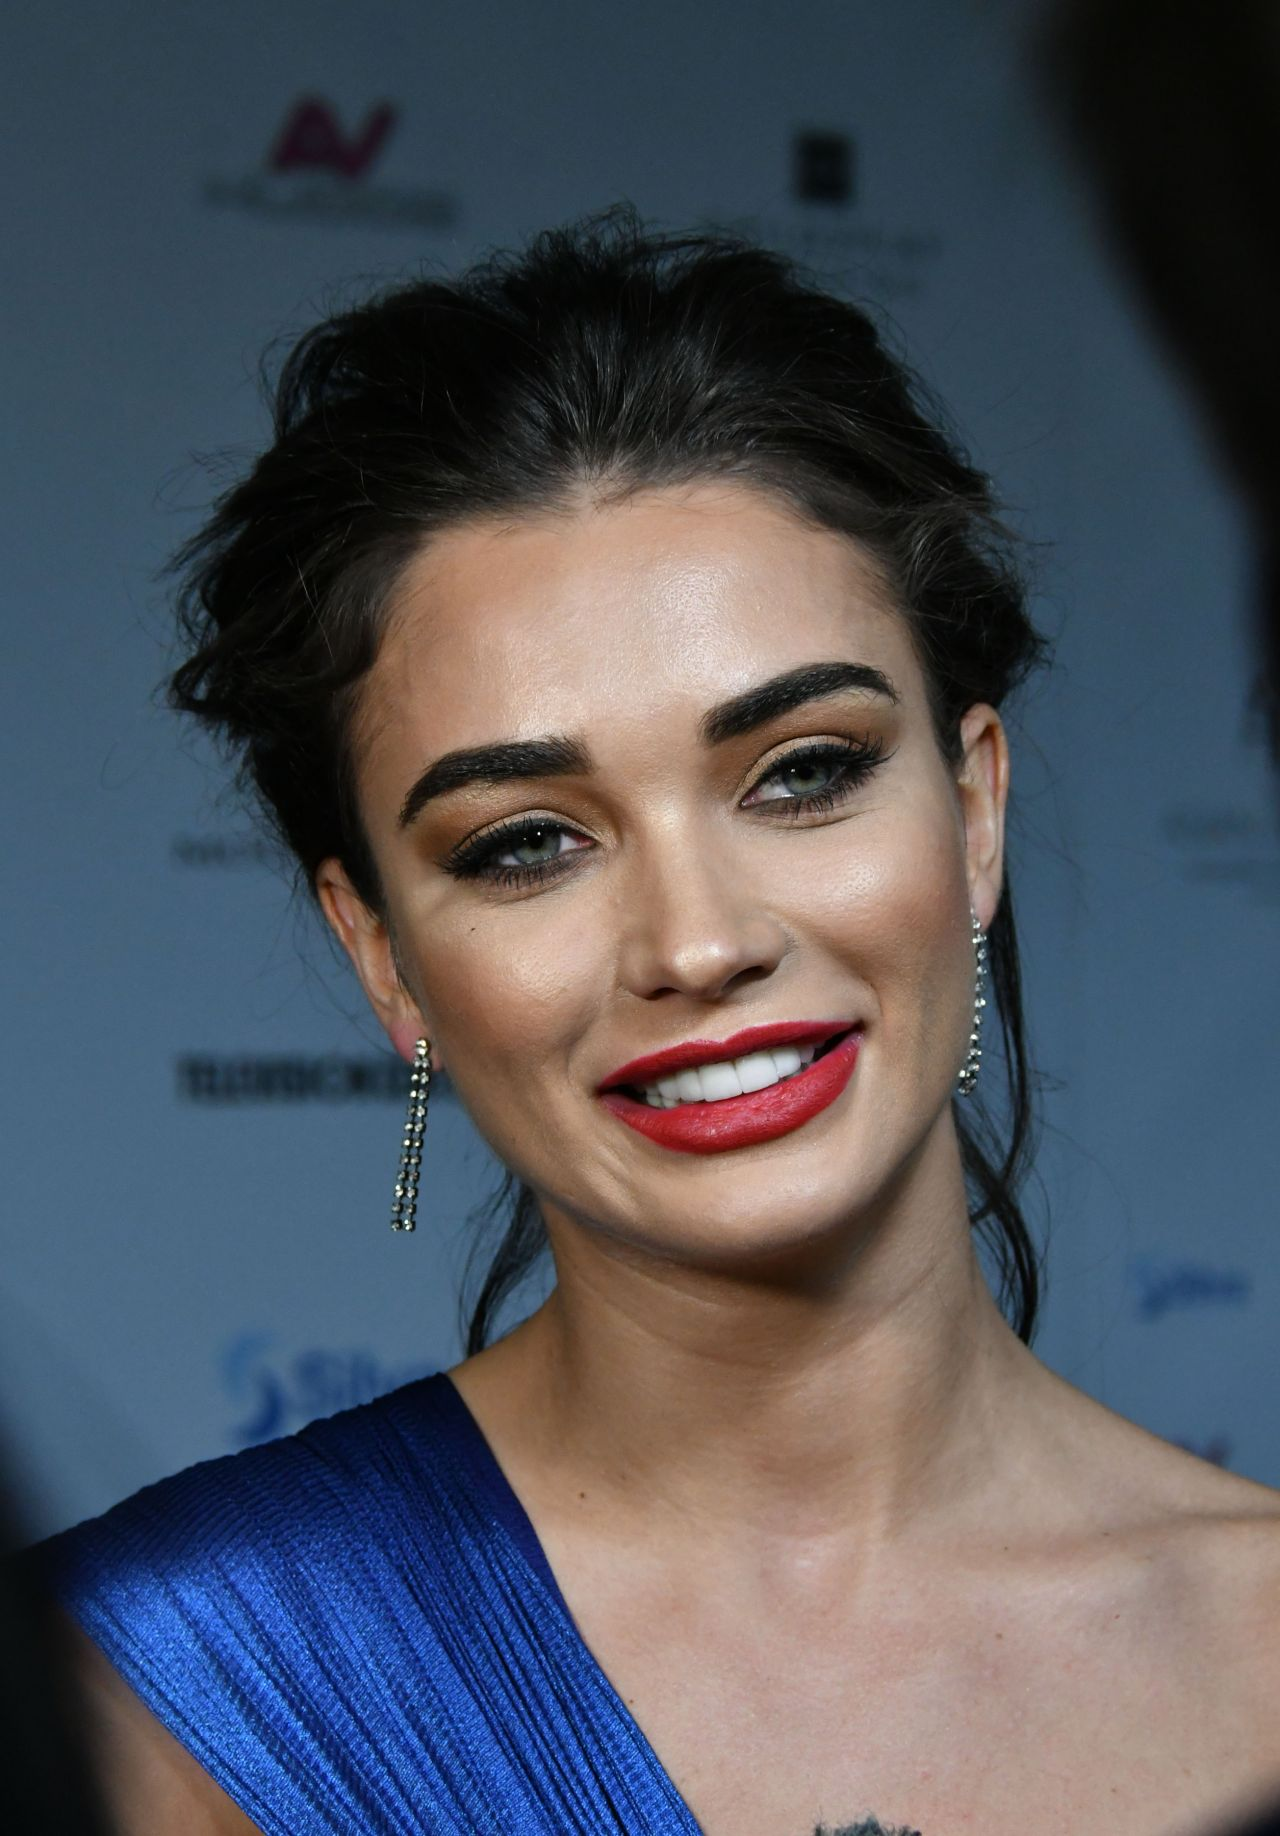 Video Amy Jackson  nude (93 fotos), Snapchat, legs